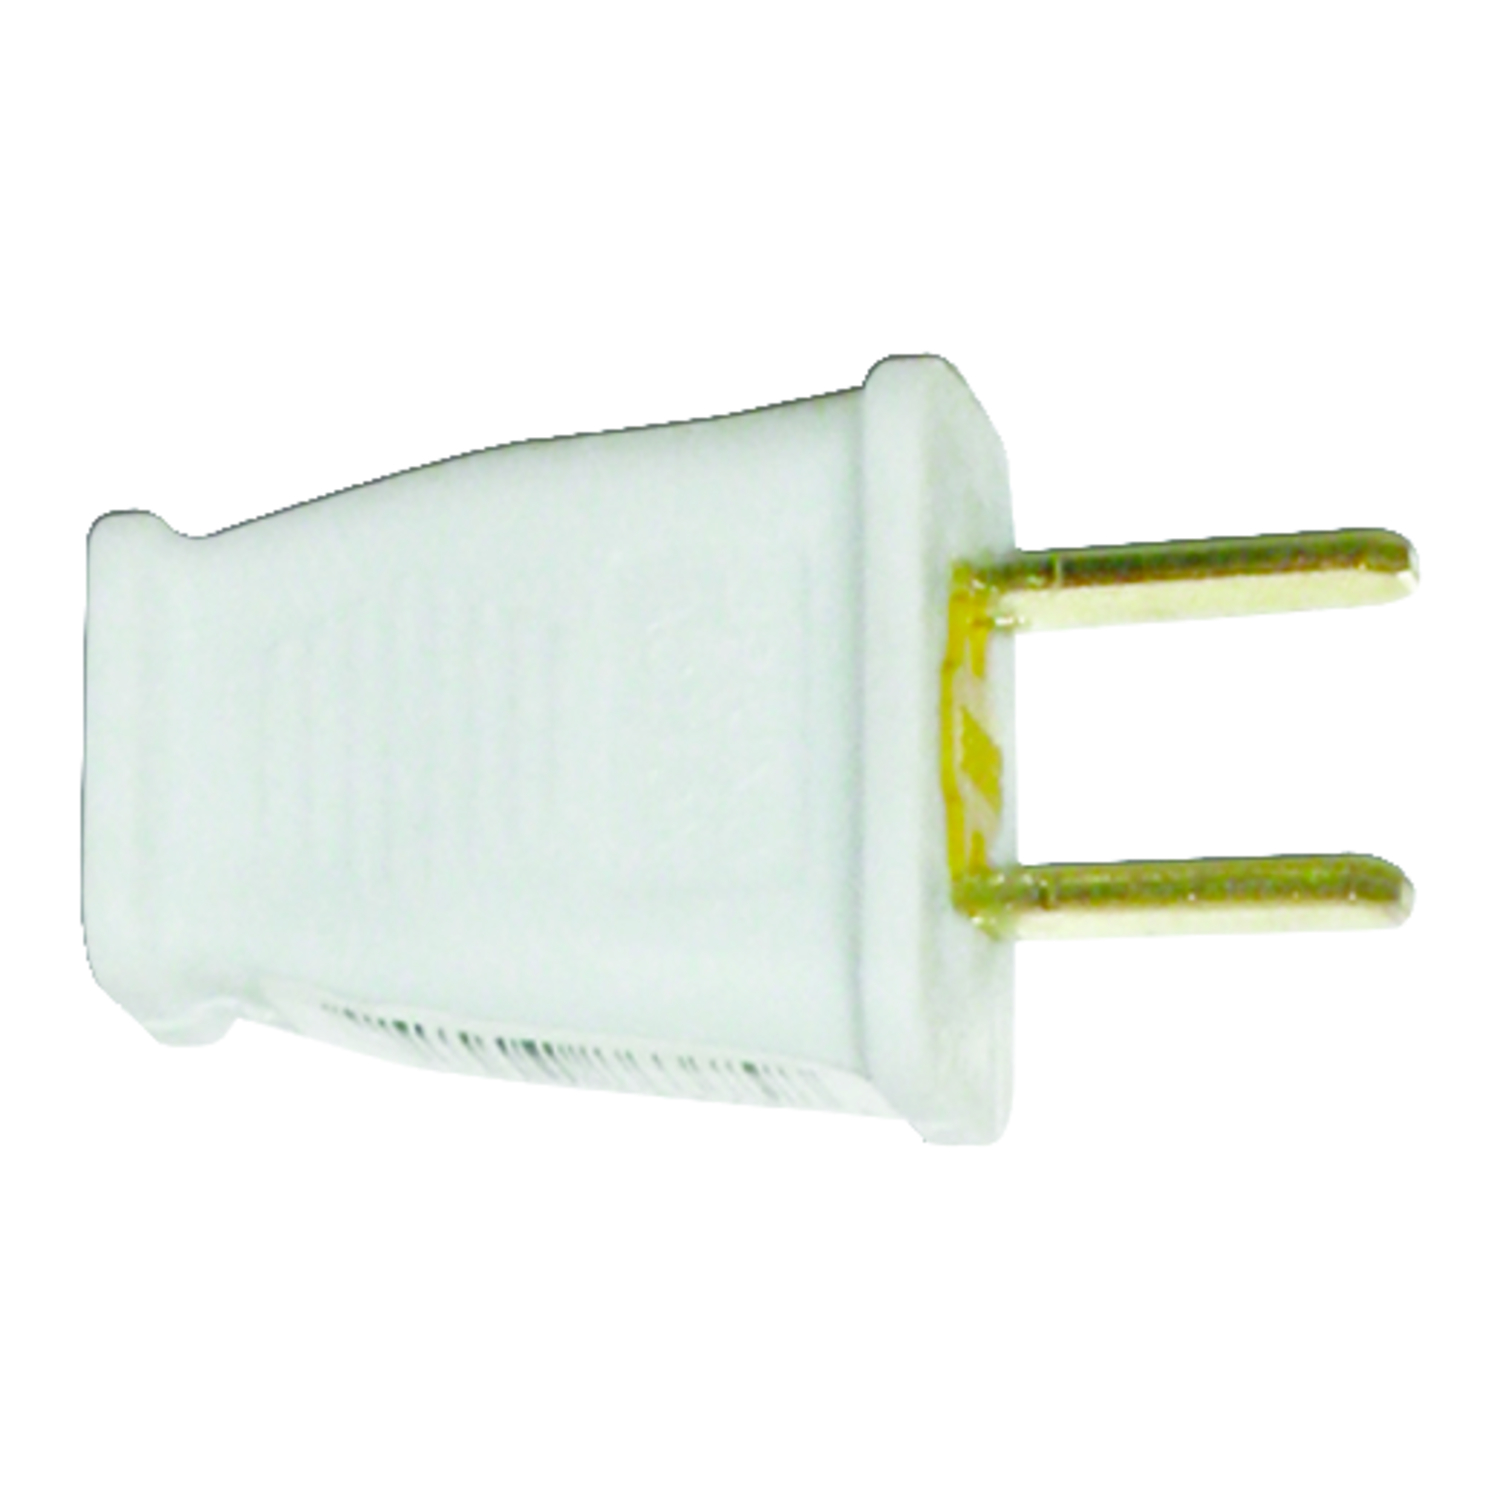 Pass & Seymour  Commercial and Residential  Thermoplastic  Non-Polarized  Plug  1-15P  16 AWG 2 Pole